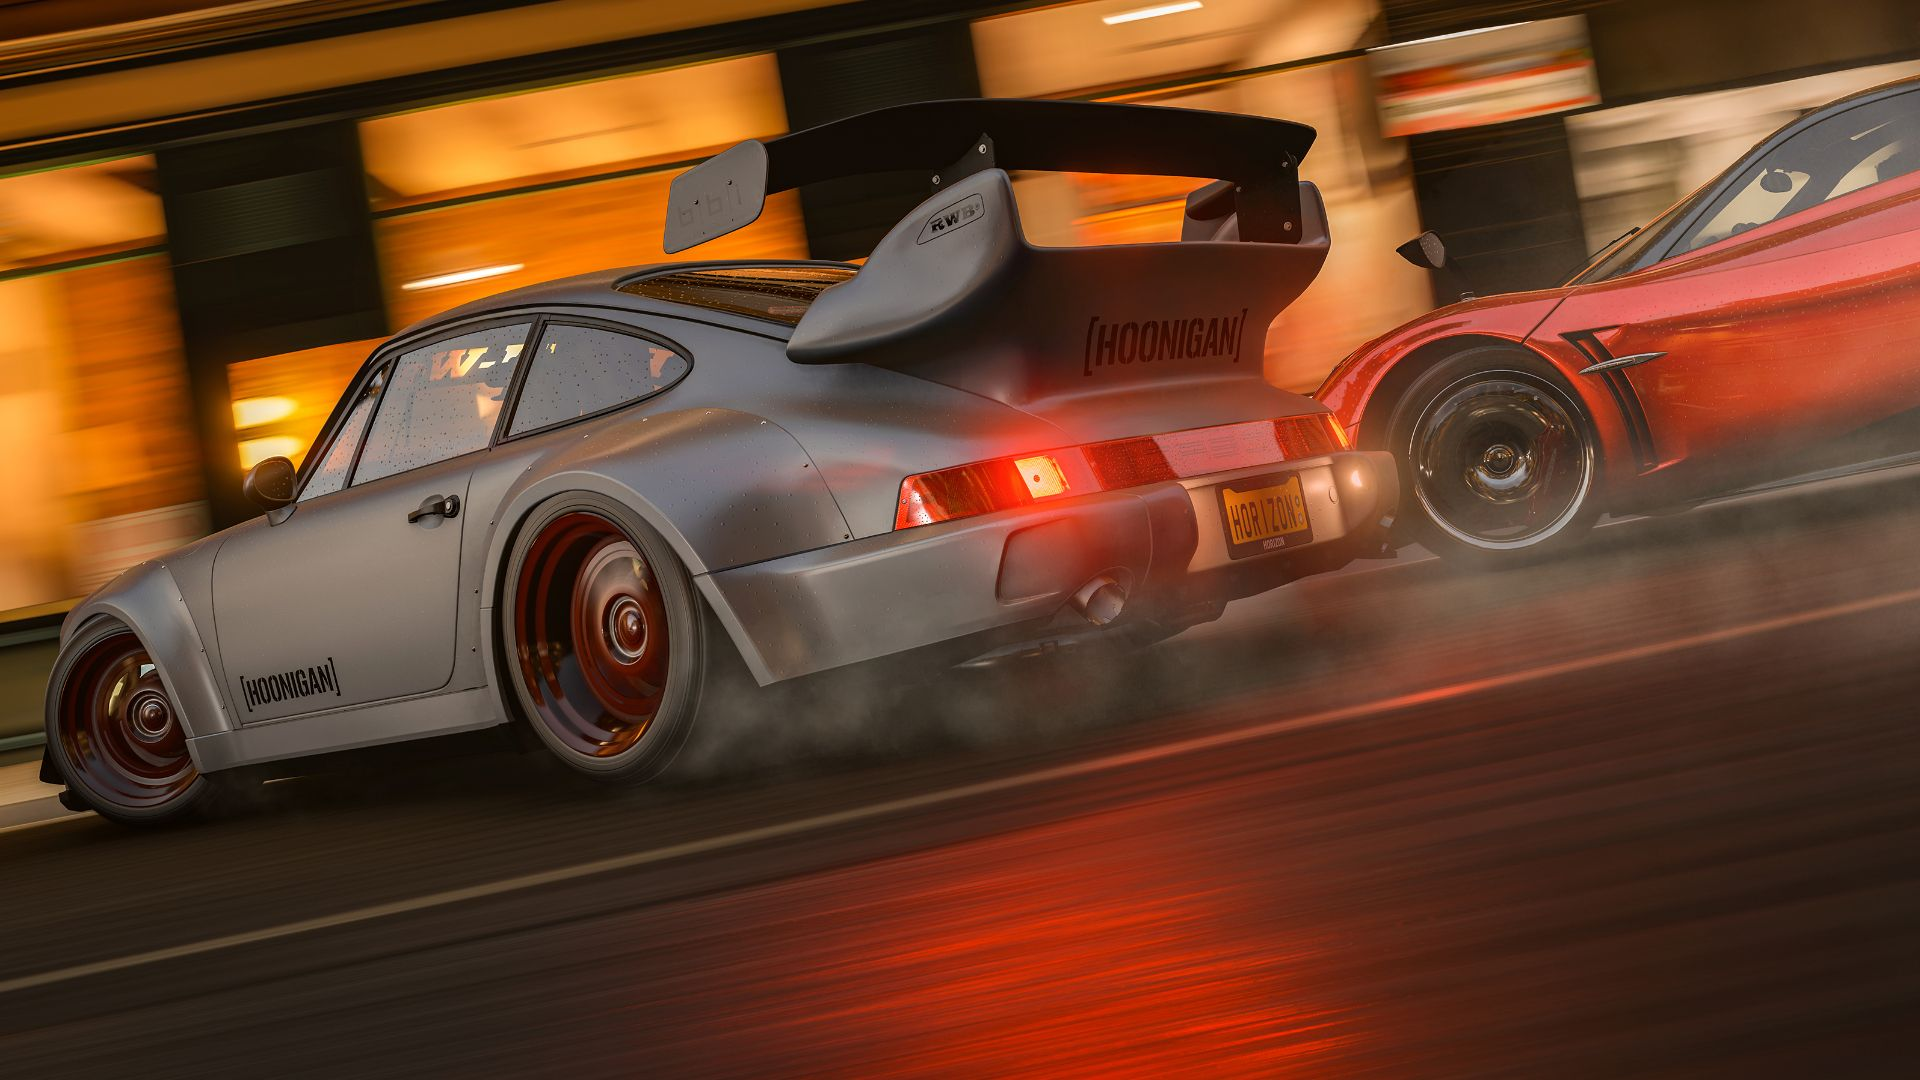 Rough Guide for Xbox helps you sightsee in Forza Horizon 4